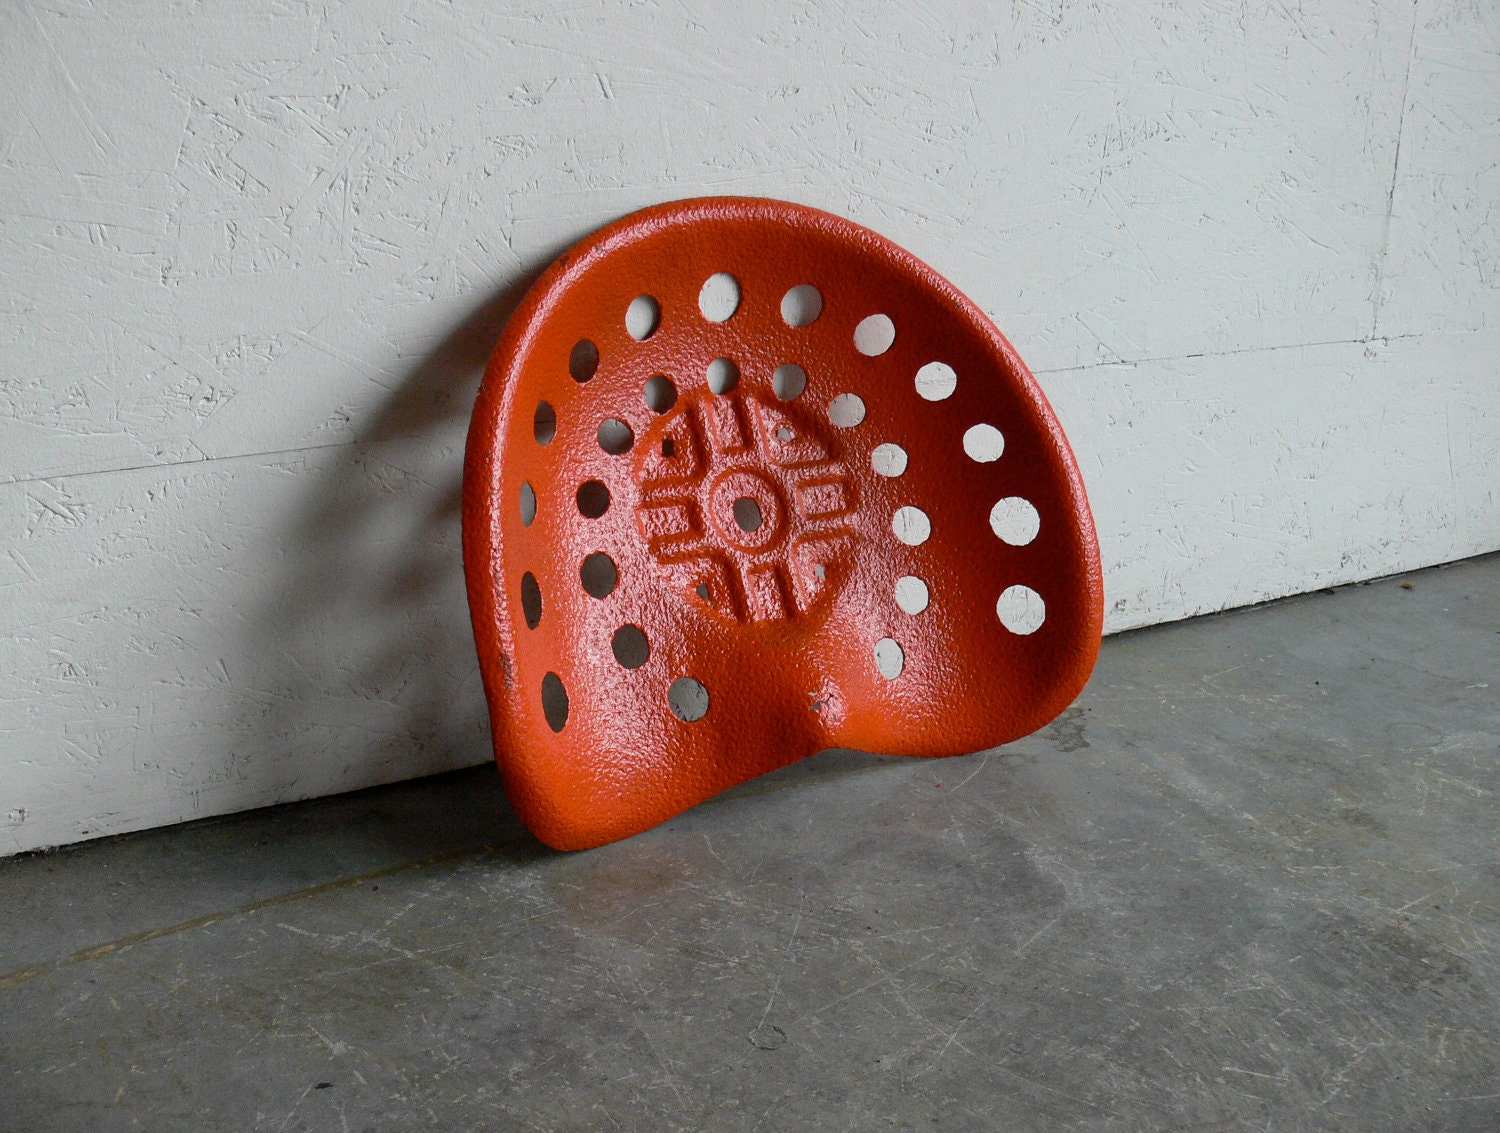 Used Metal Tractor Seats : Reserved vintage metal tractor seat by comod on etsy